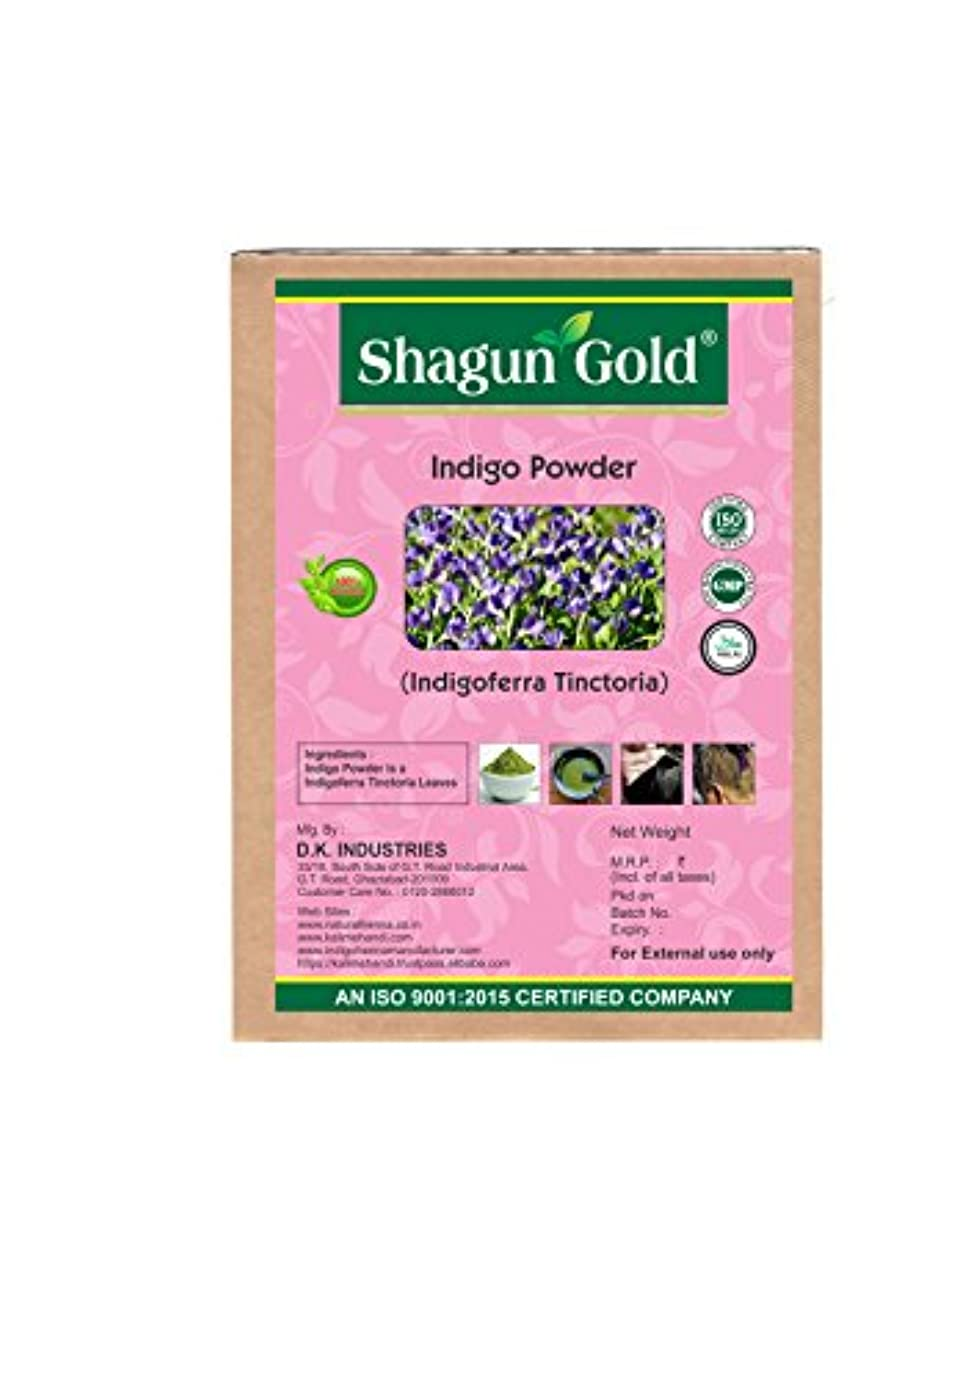 確保する穿孔するリブShagun Gold A 100% Natural ( Indigofera Tinctoria ) Natural Indigo Powder For Hair Certified By Gmp / Halal /...